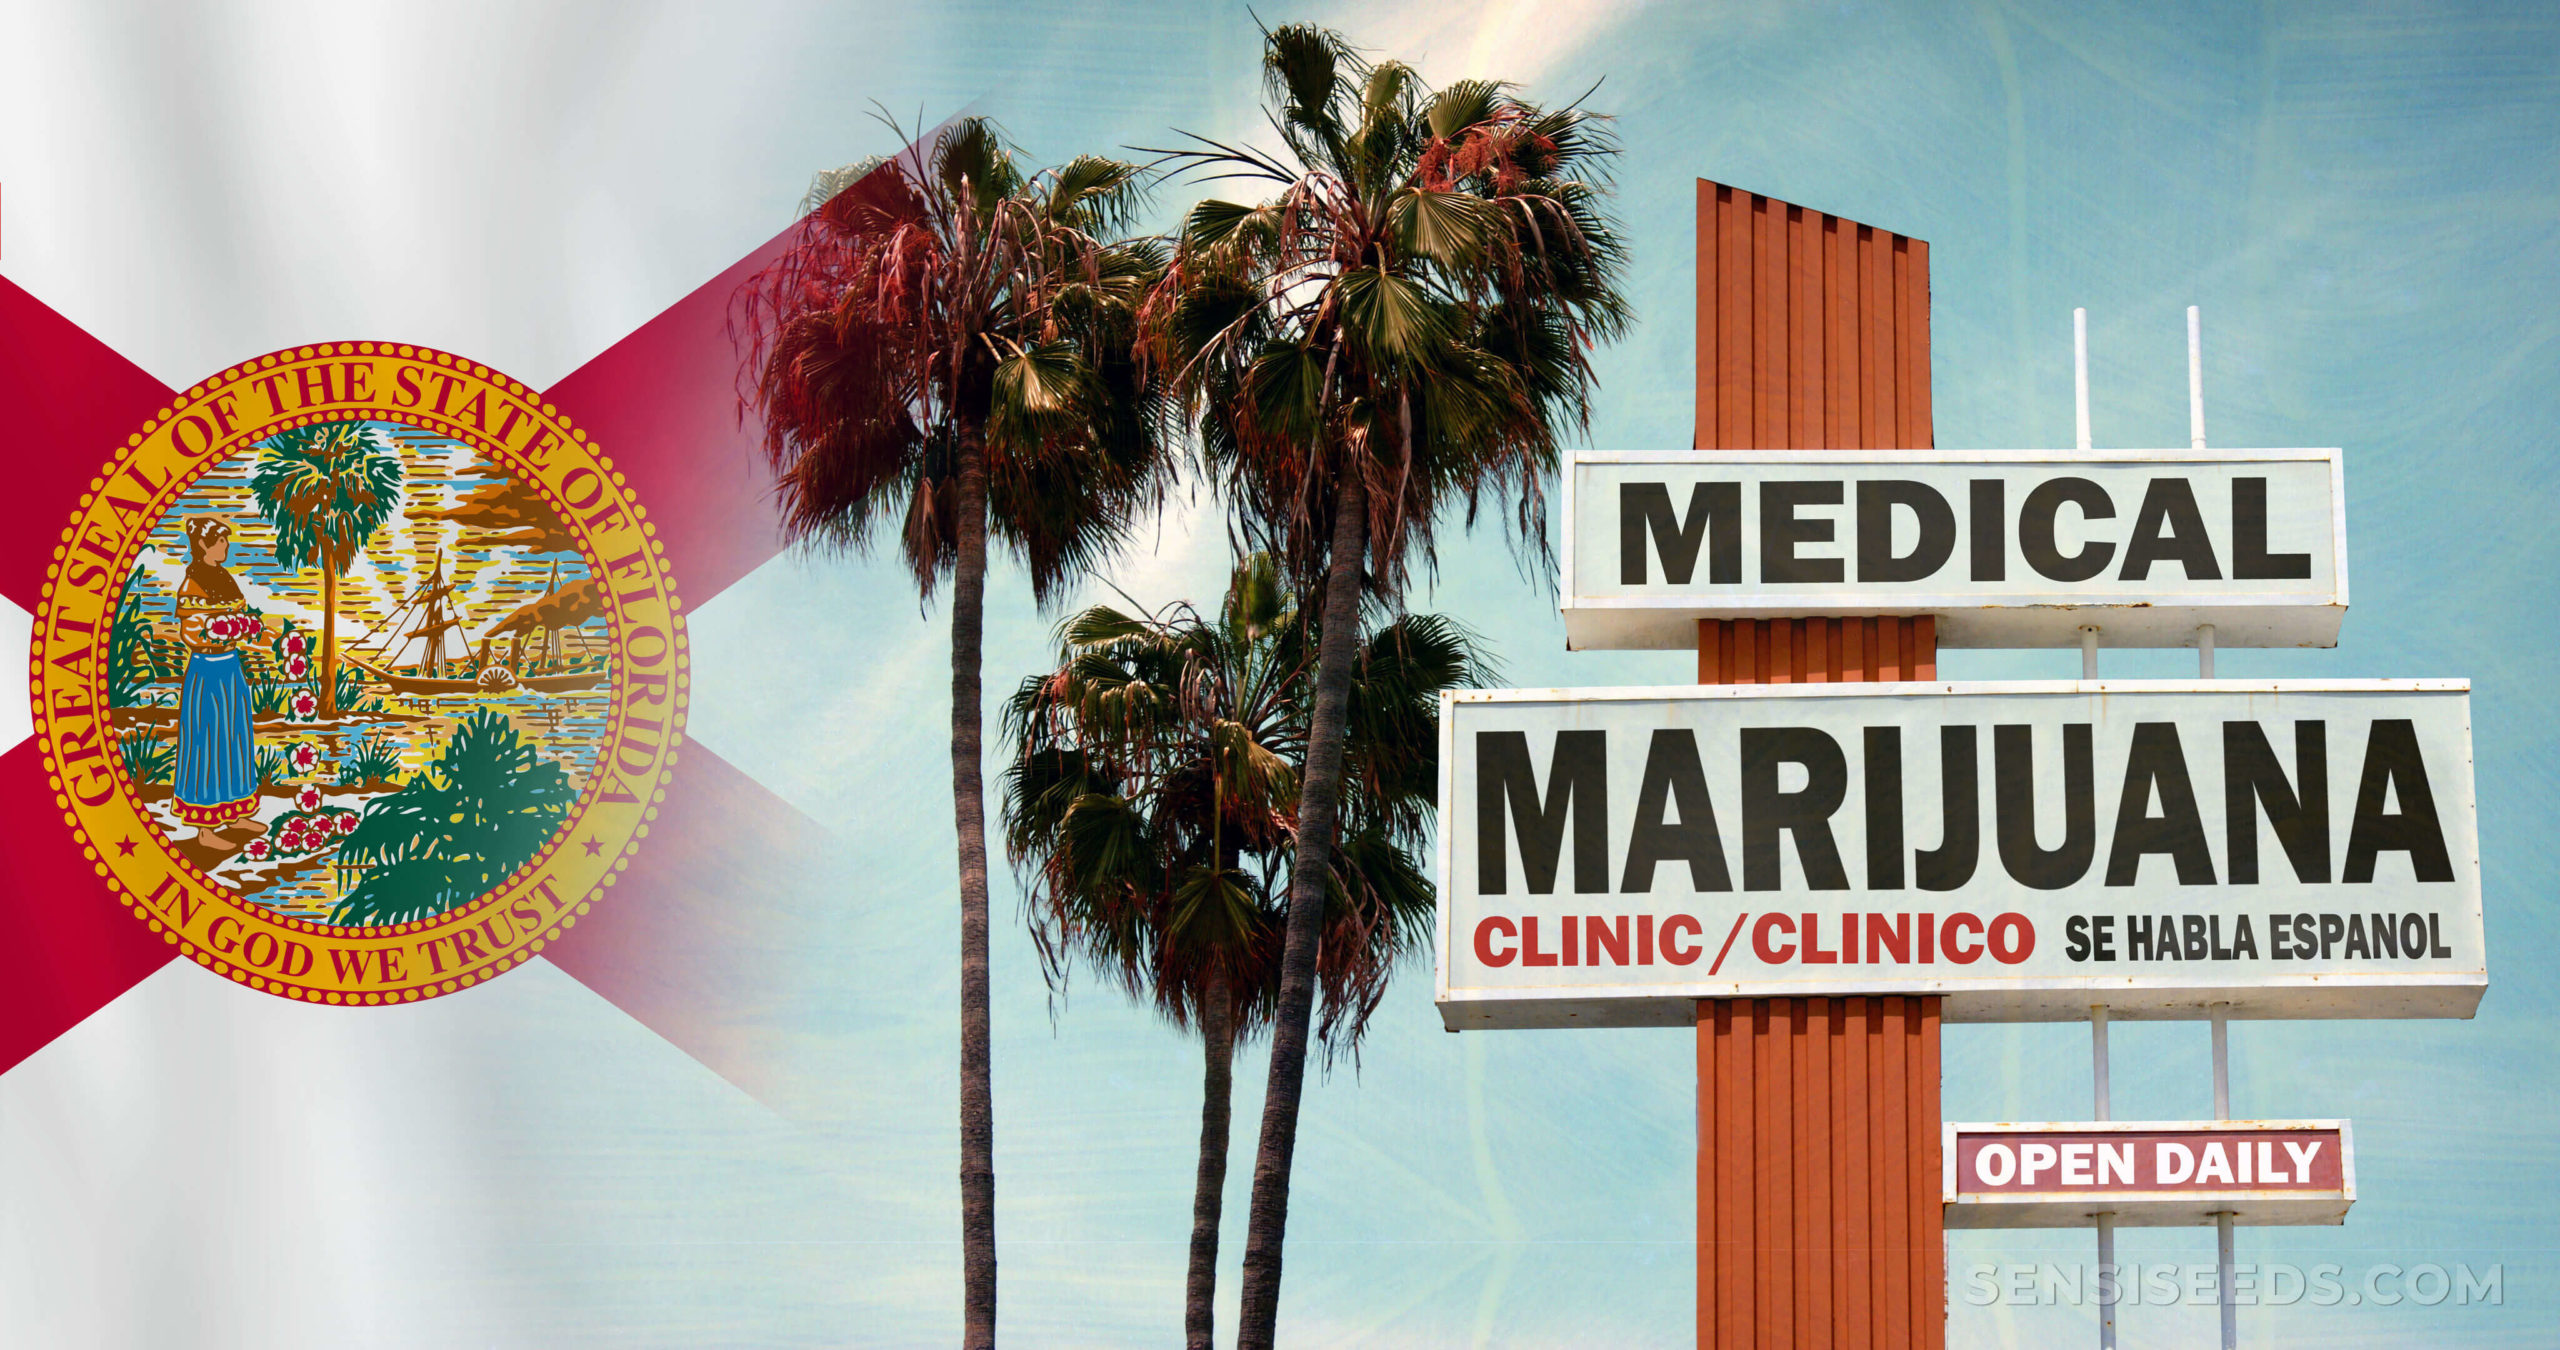 The Floridian flag, palm trees, and a sign for 'medical marijuana'